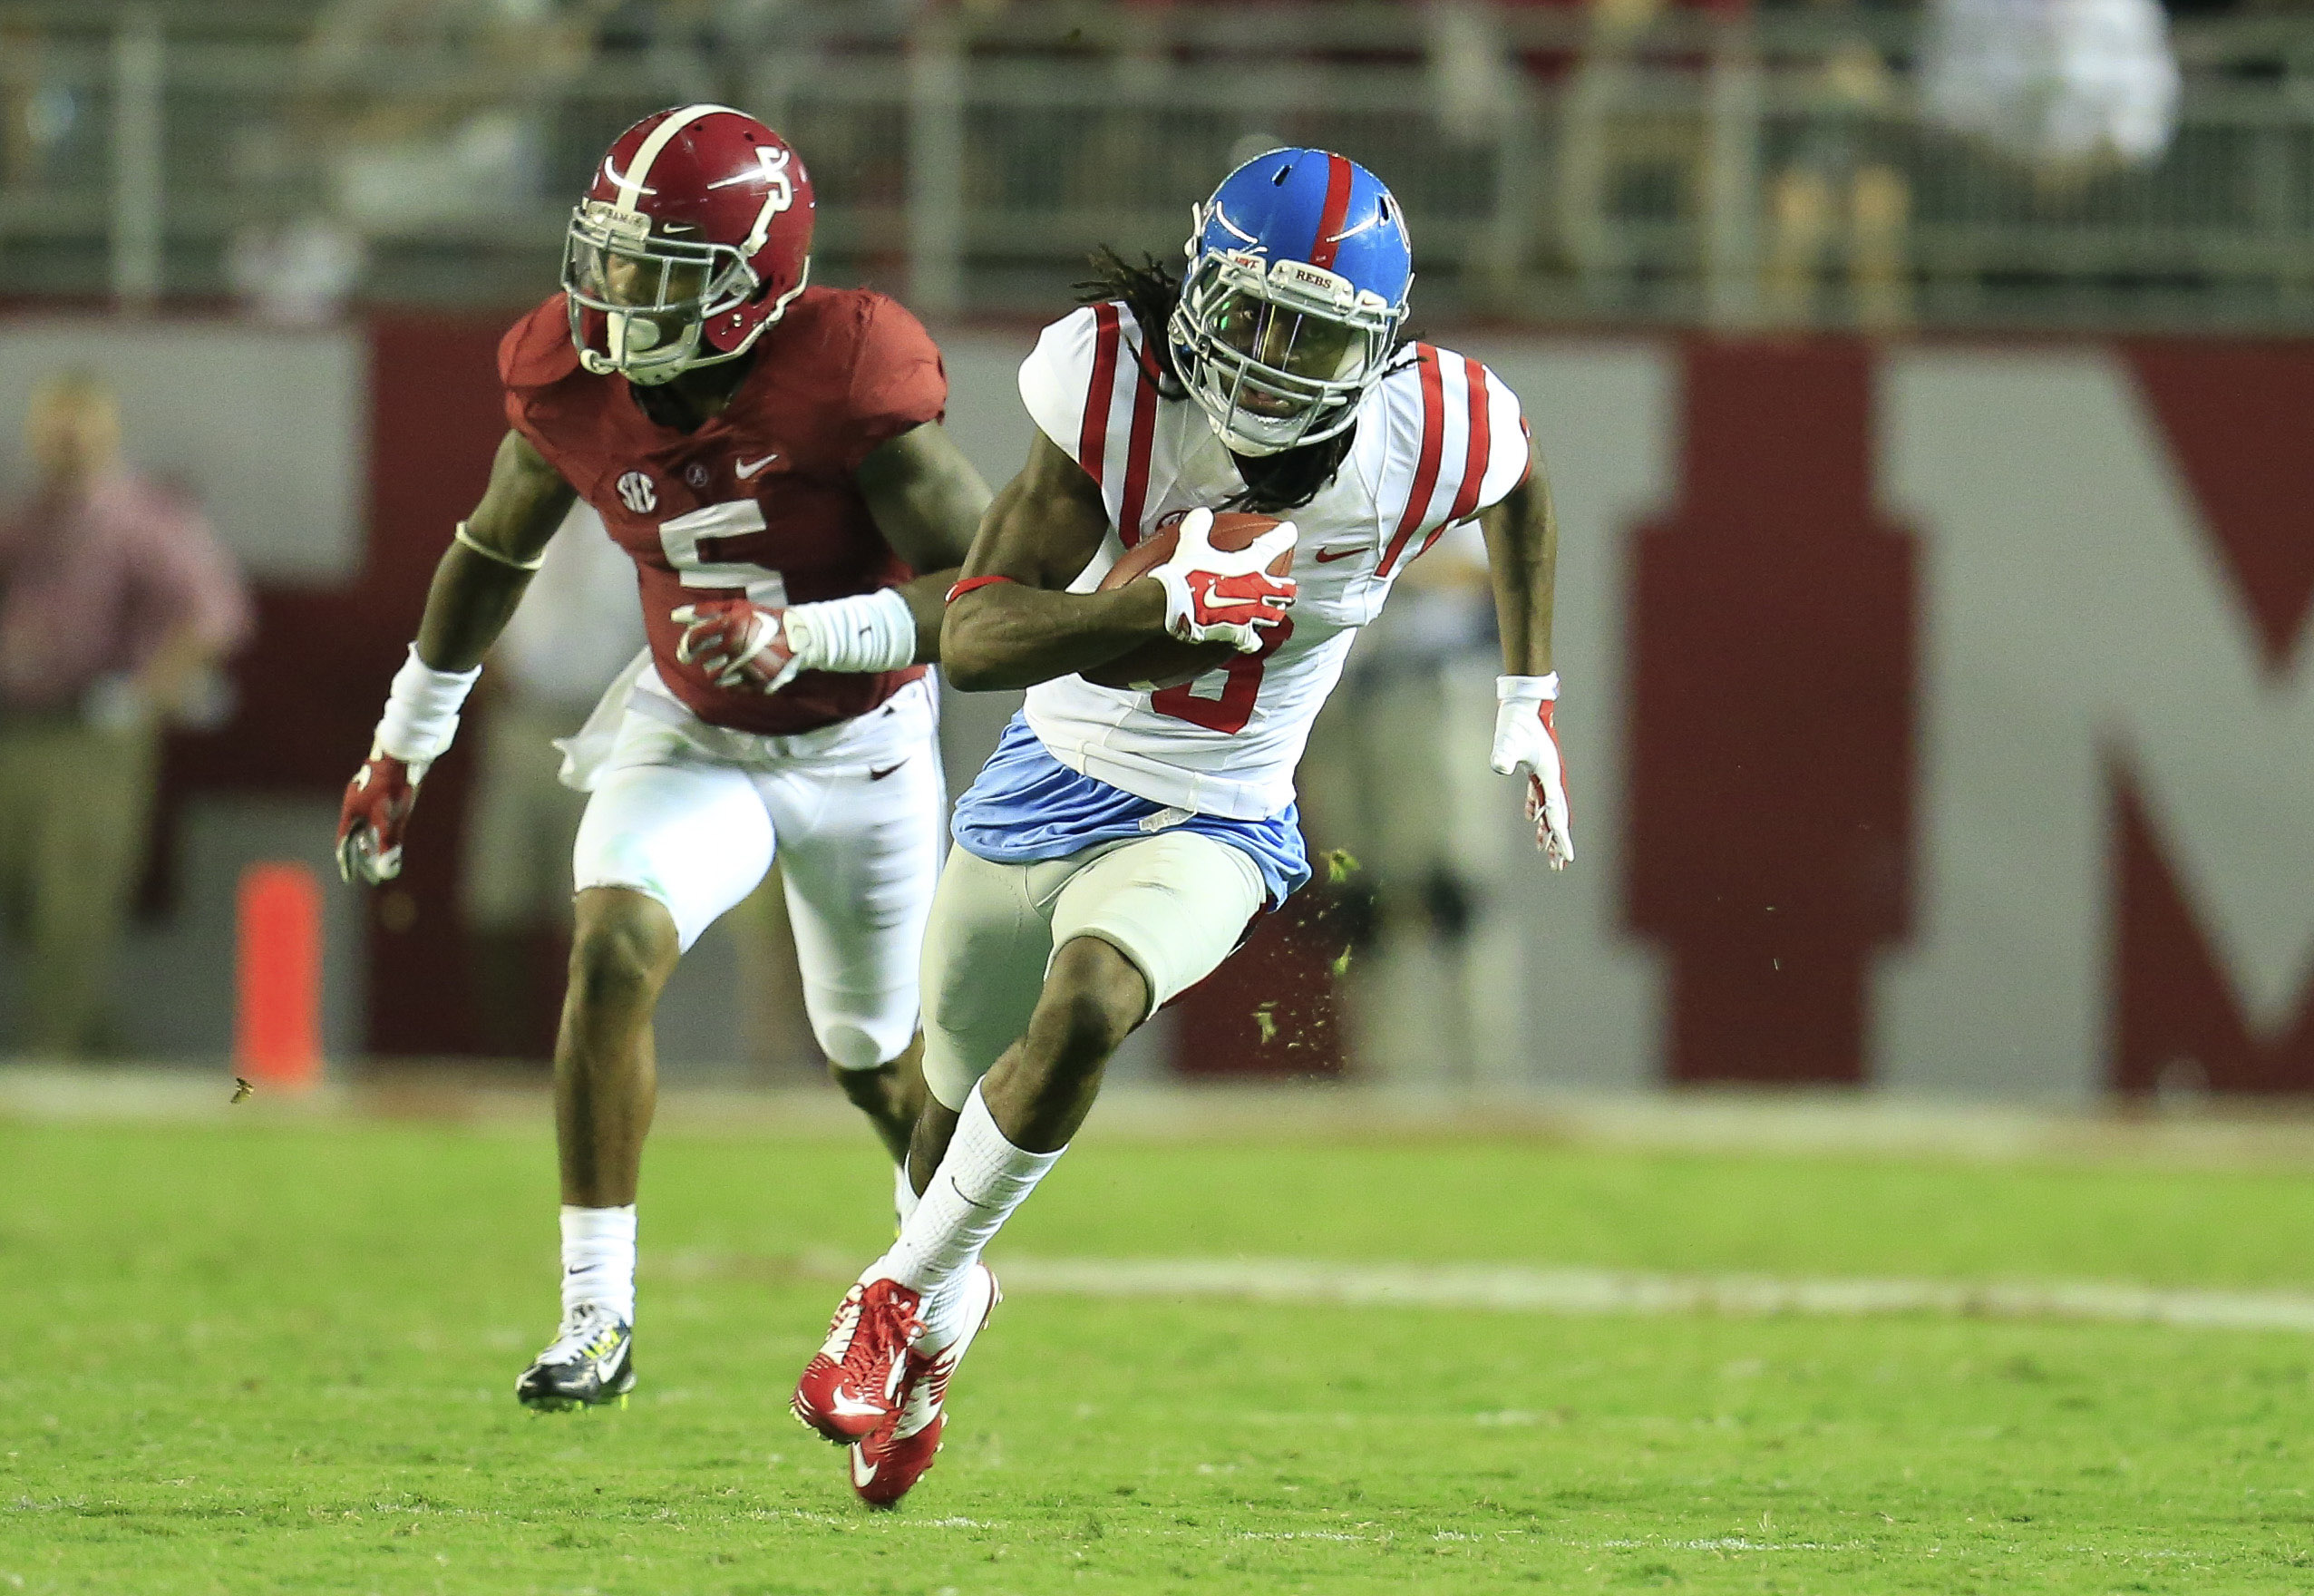 Quincy Adeboyejo, WR, Ole Miss: 2017 NFL Draft Scouting Report